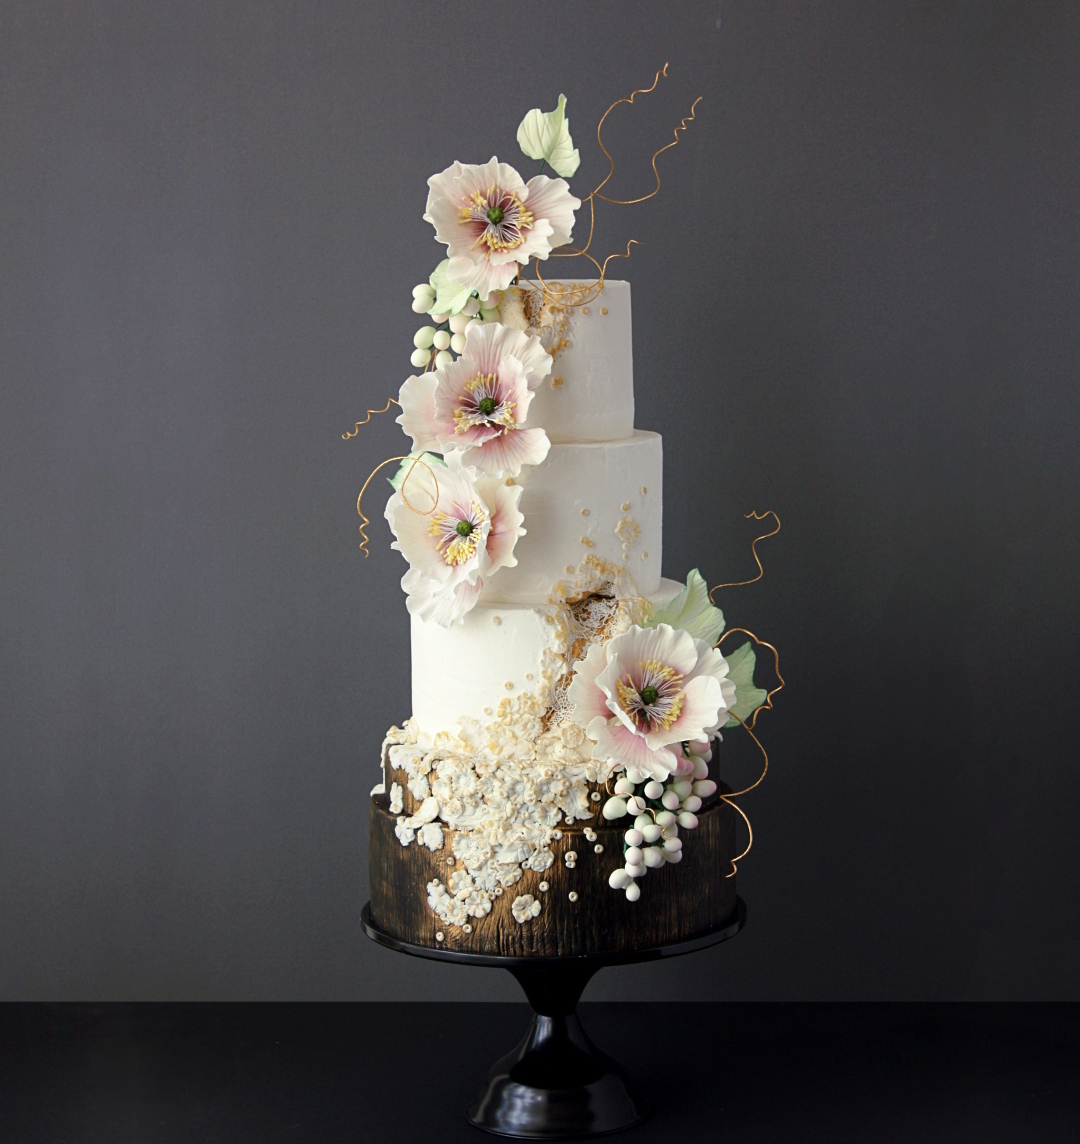 Ivory fondant wedding cake with sugar flowers